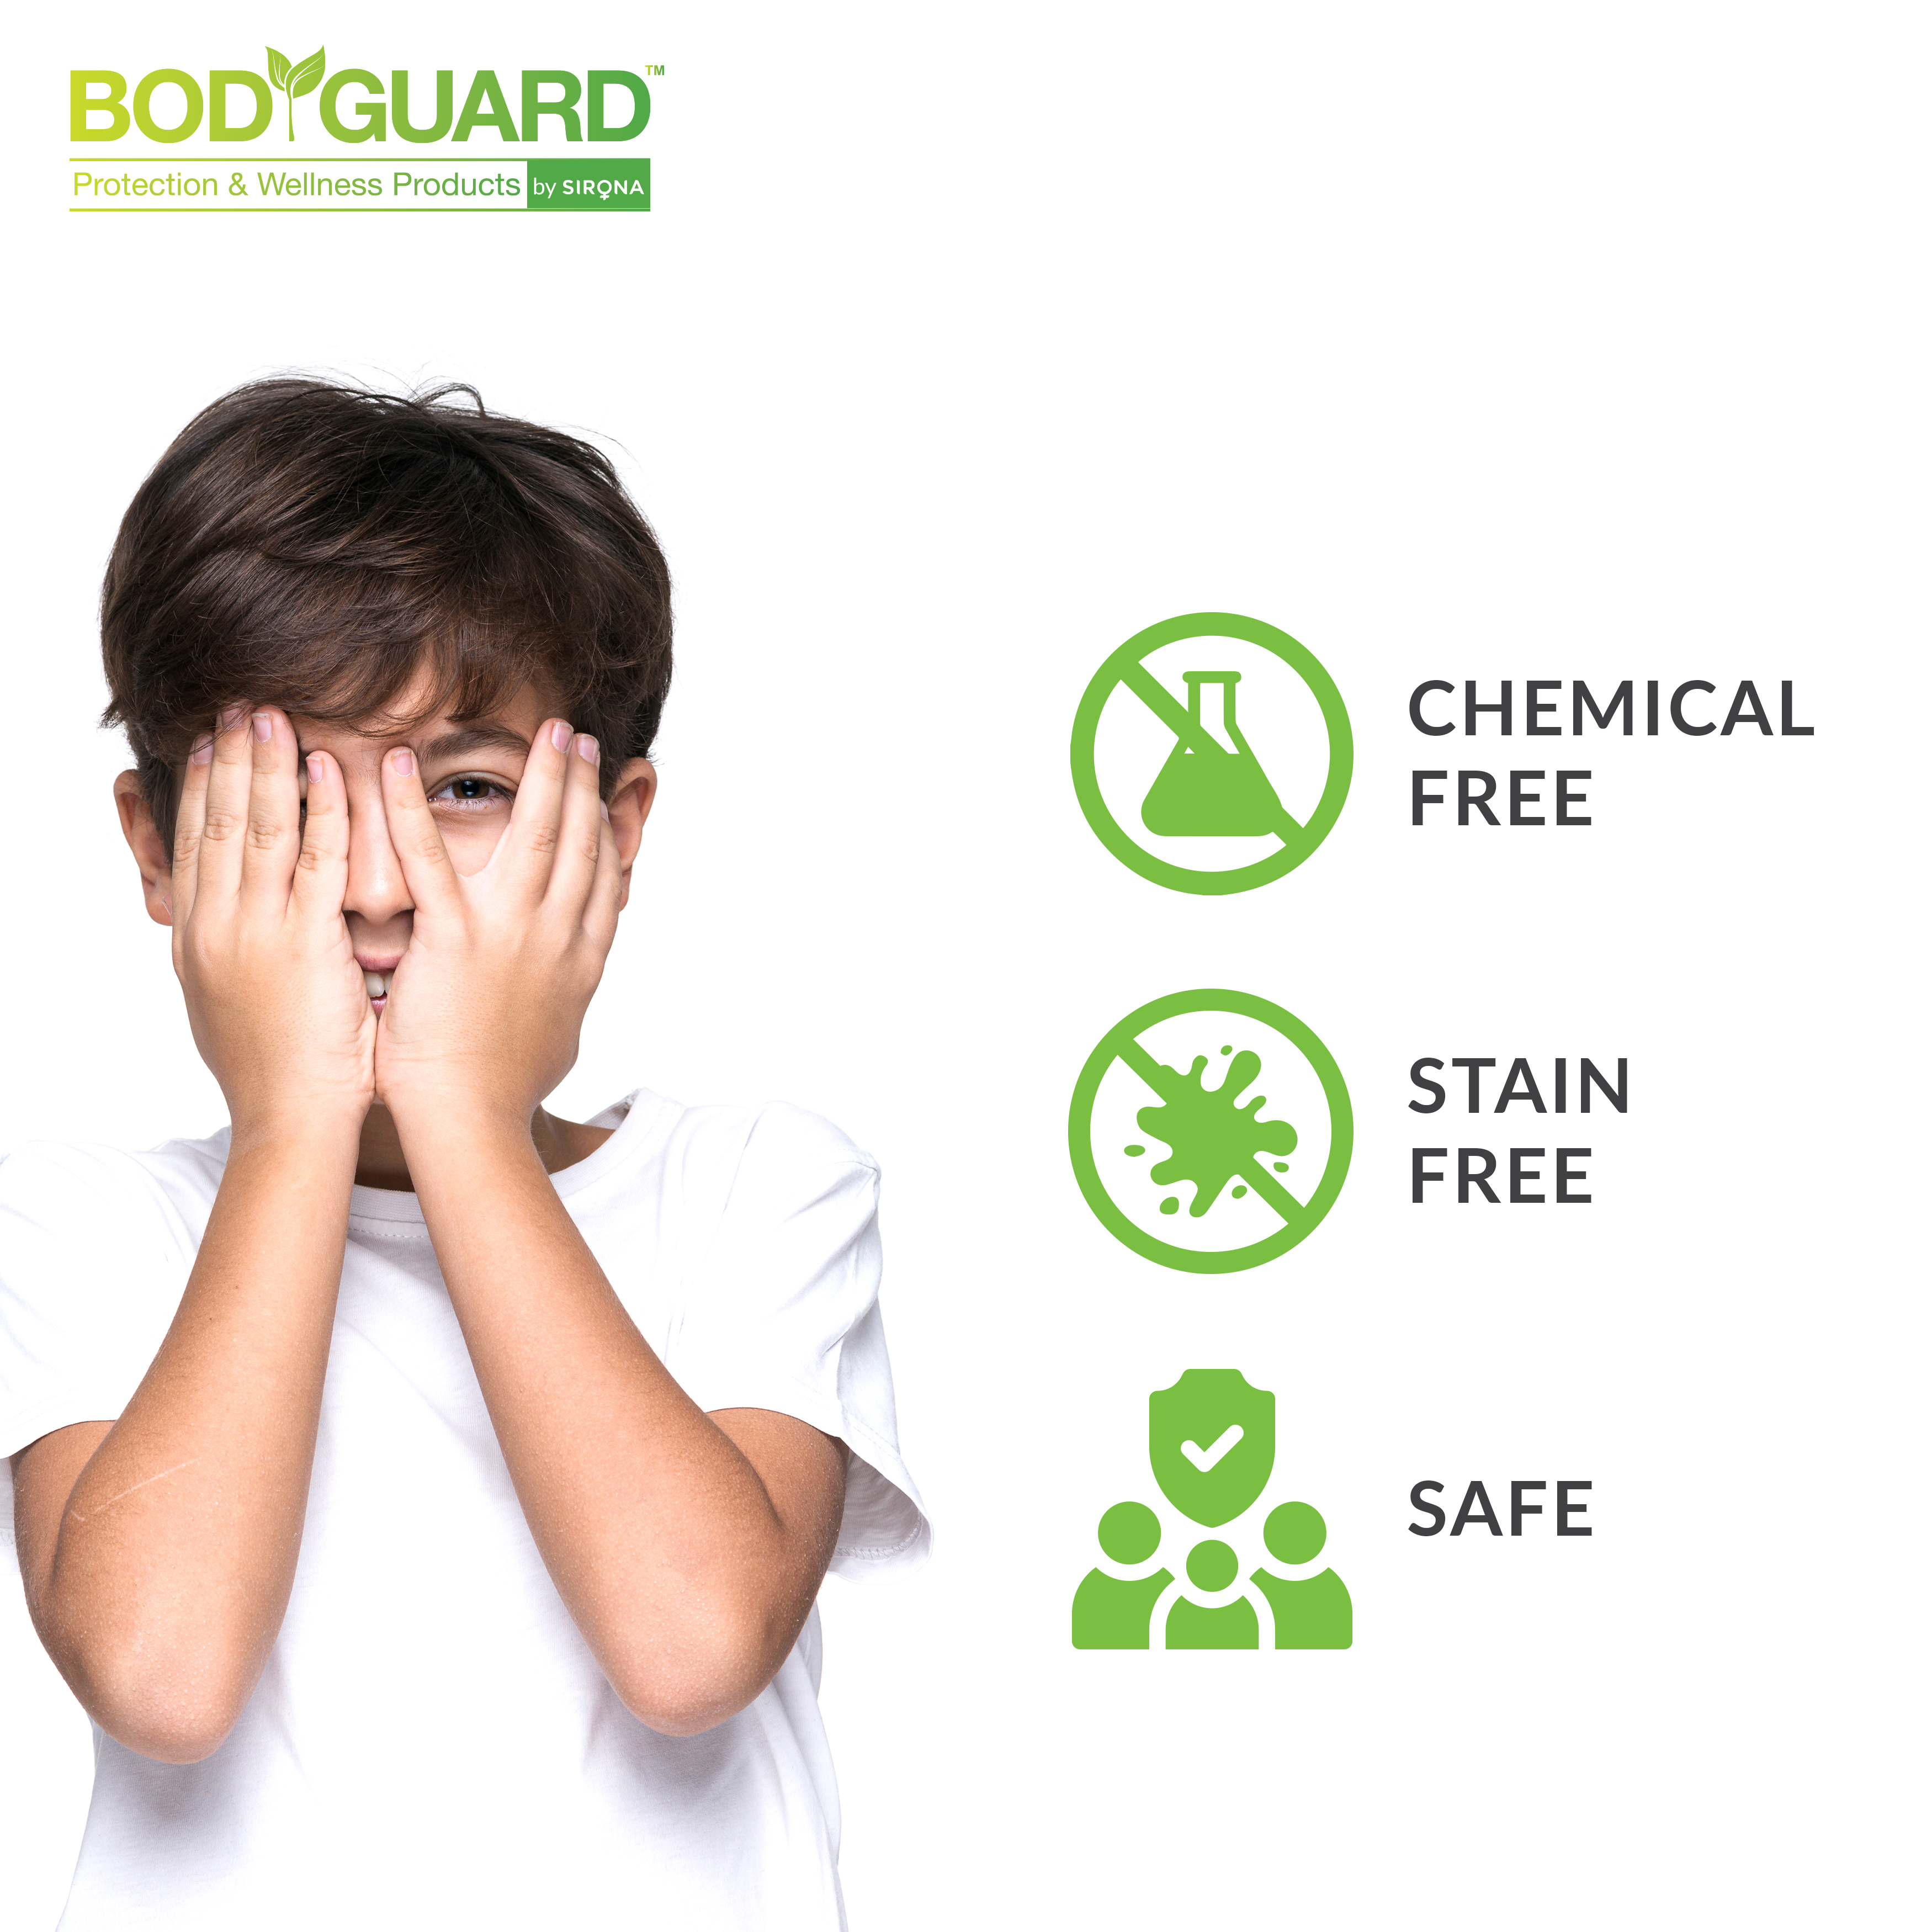 BodGuard Natural Mosquito Repellent Cream with Aloe Vera and Neem Extracts - 100 gm (Pack of 3)